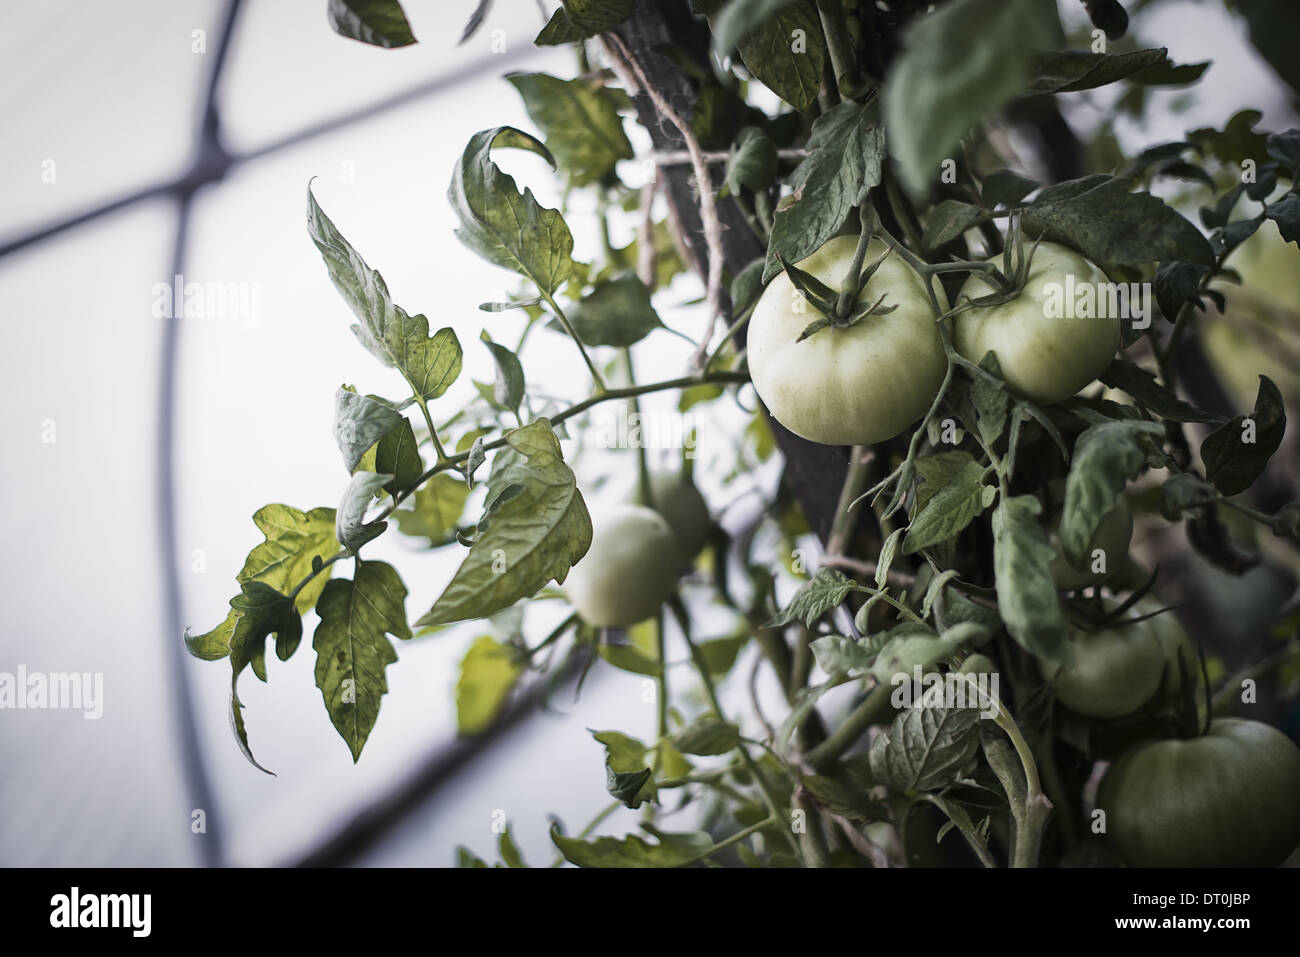 Woodstock New York USA Tomato plants bearing fruit Growing in polytunnel - Stock Image